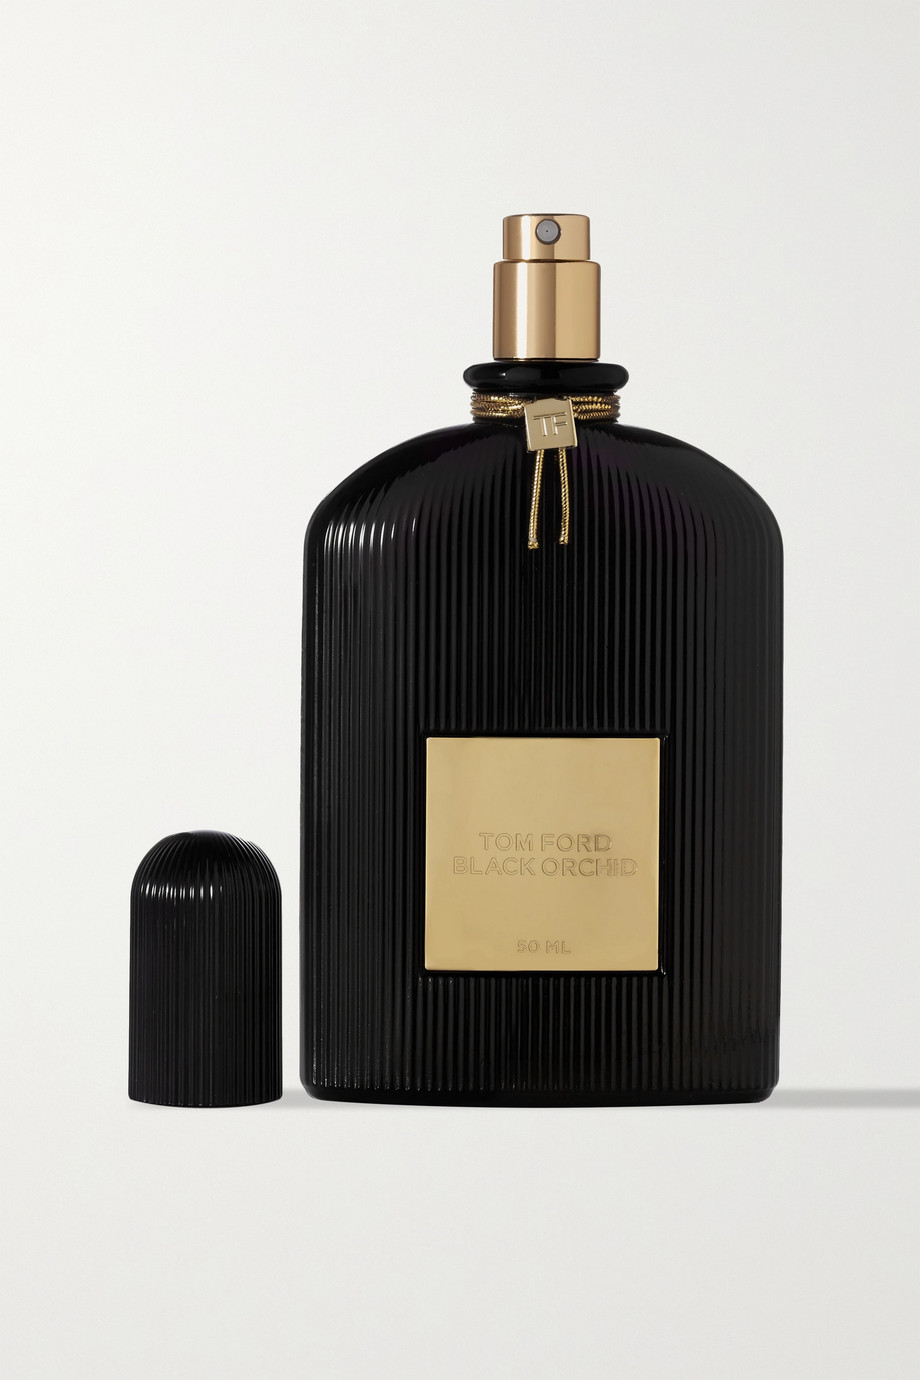 TOM FORD BEAUTY Black Orchid Eau de Parfum - Black Truffle, Bergamot & Black Orchid, 50ml